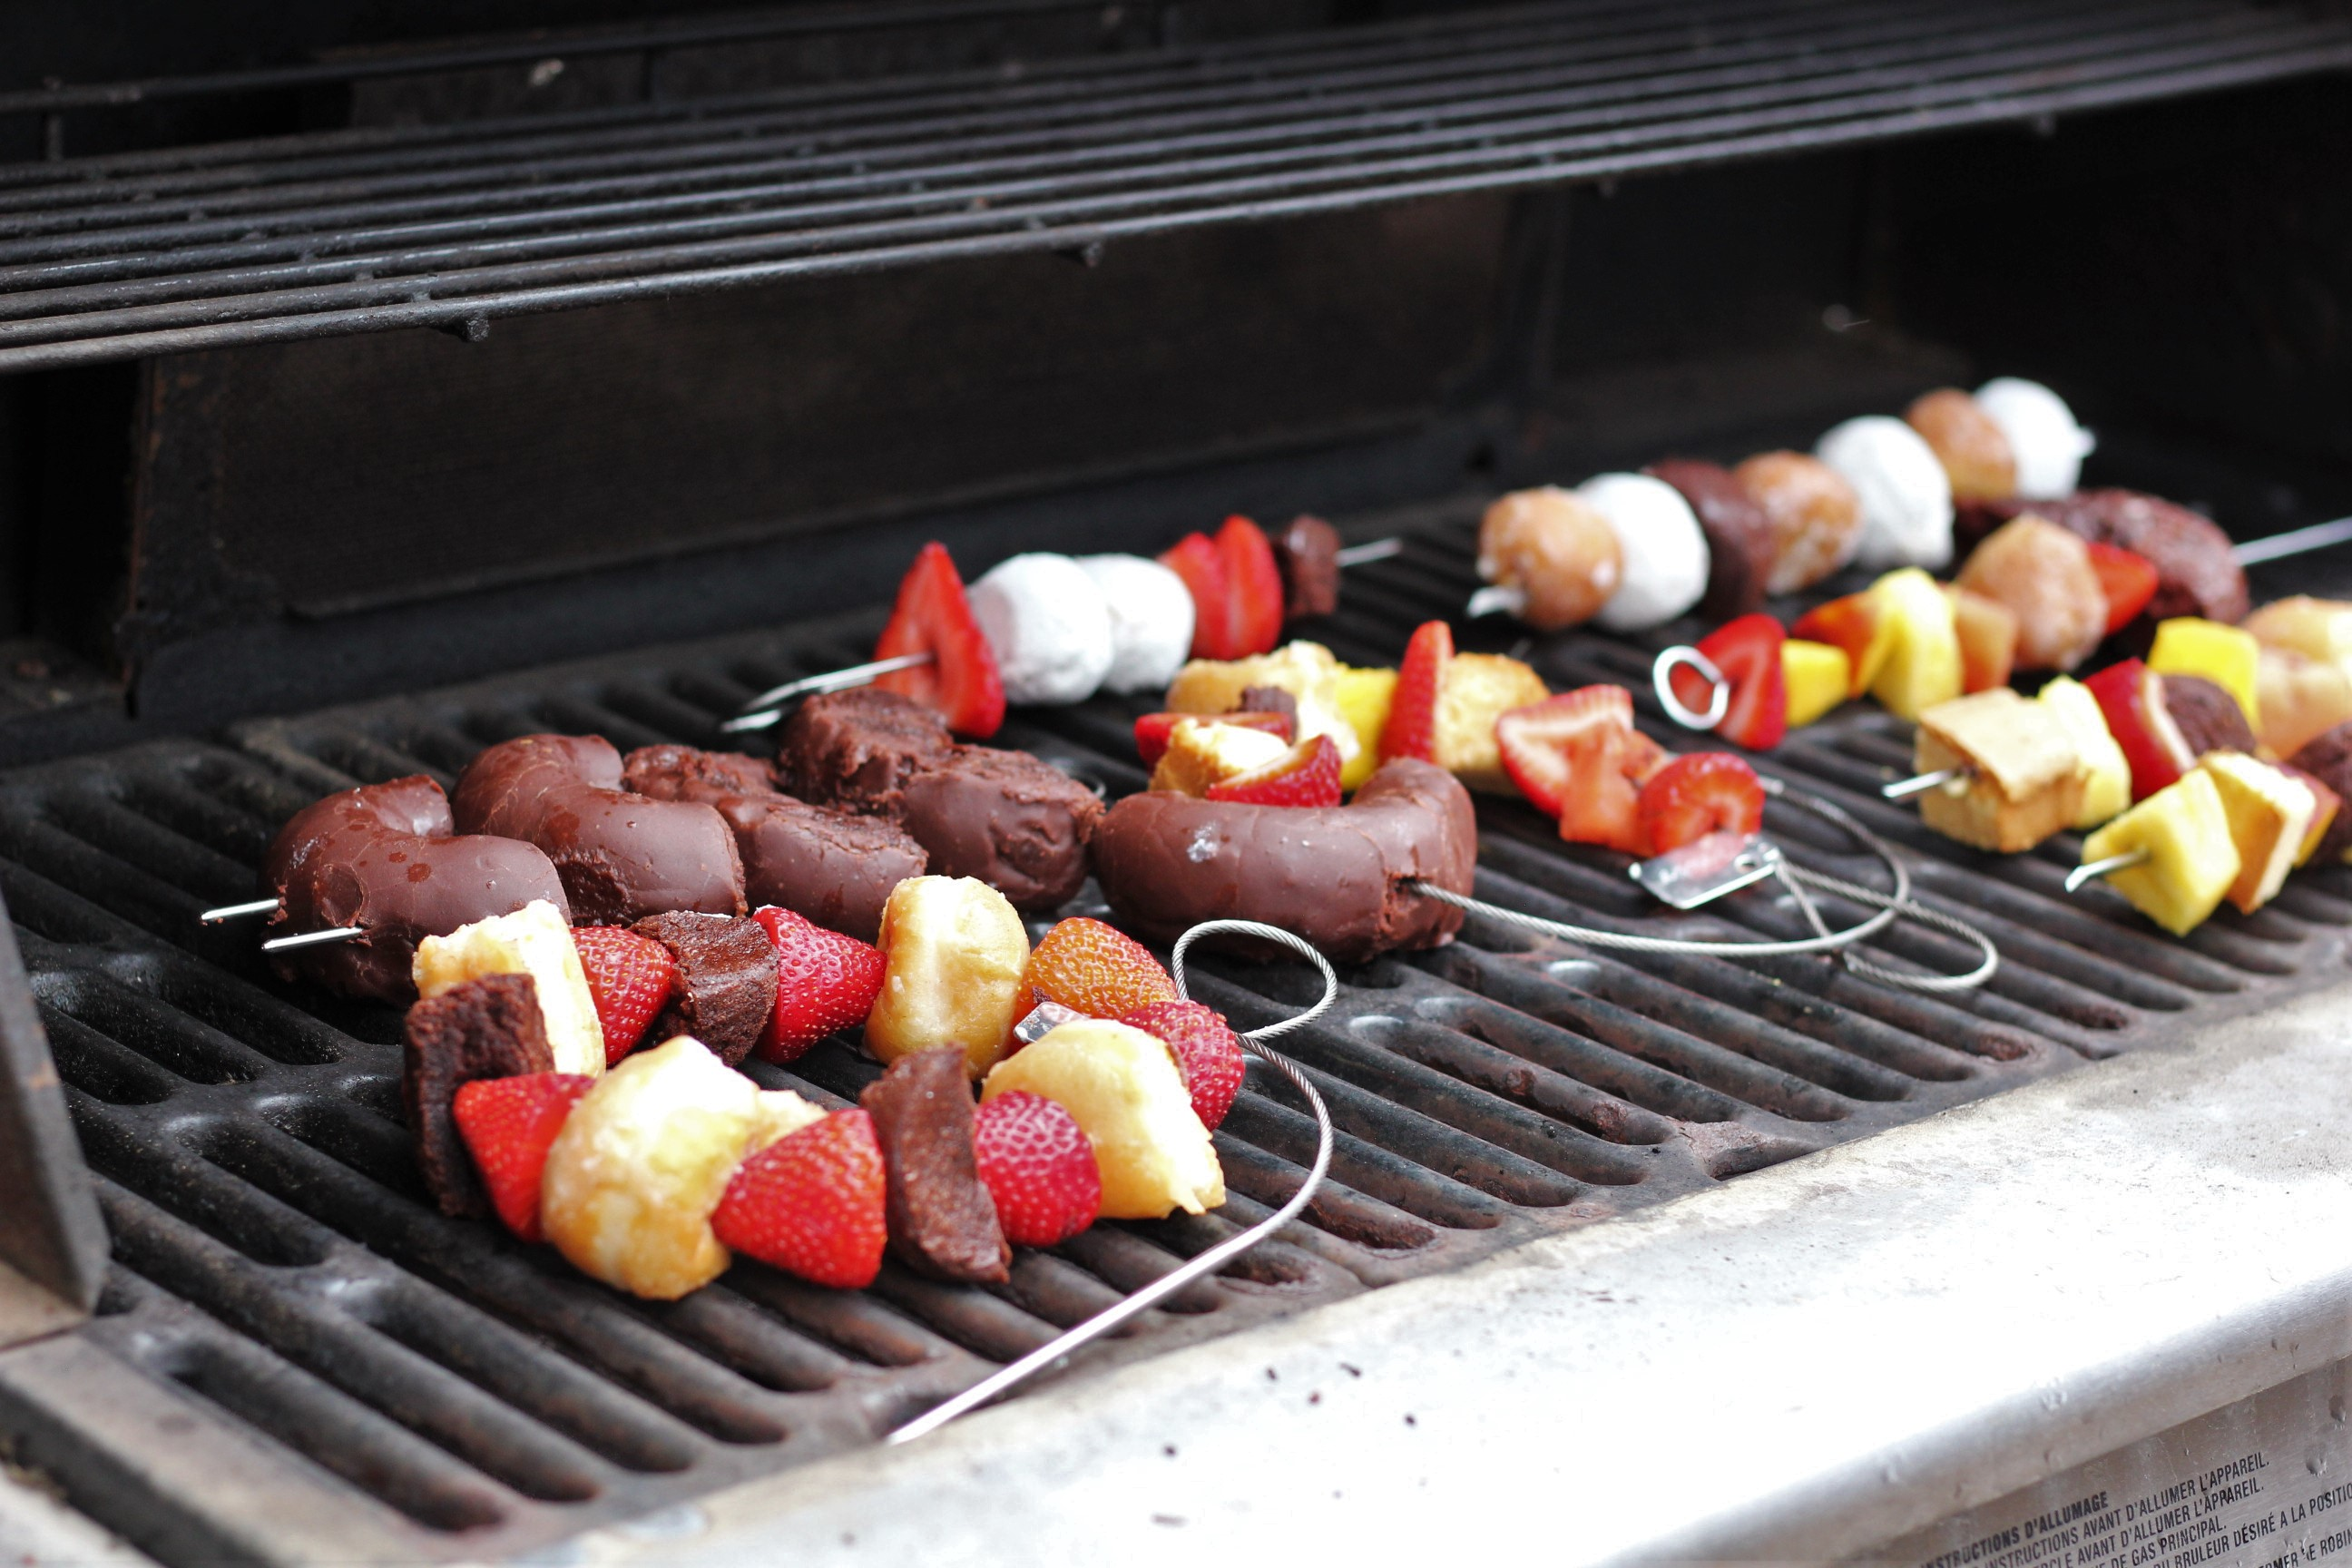 Dessert kebabs with donuts and fruit on a grill.